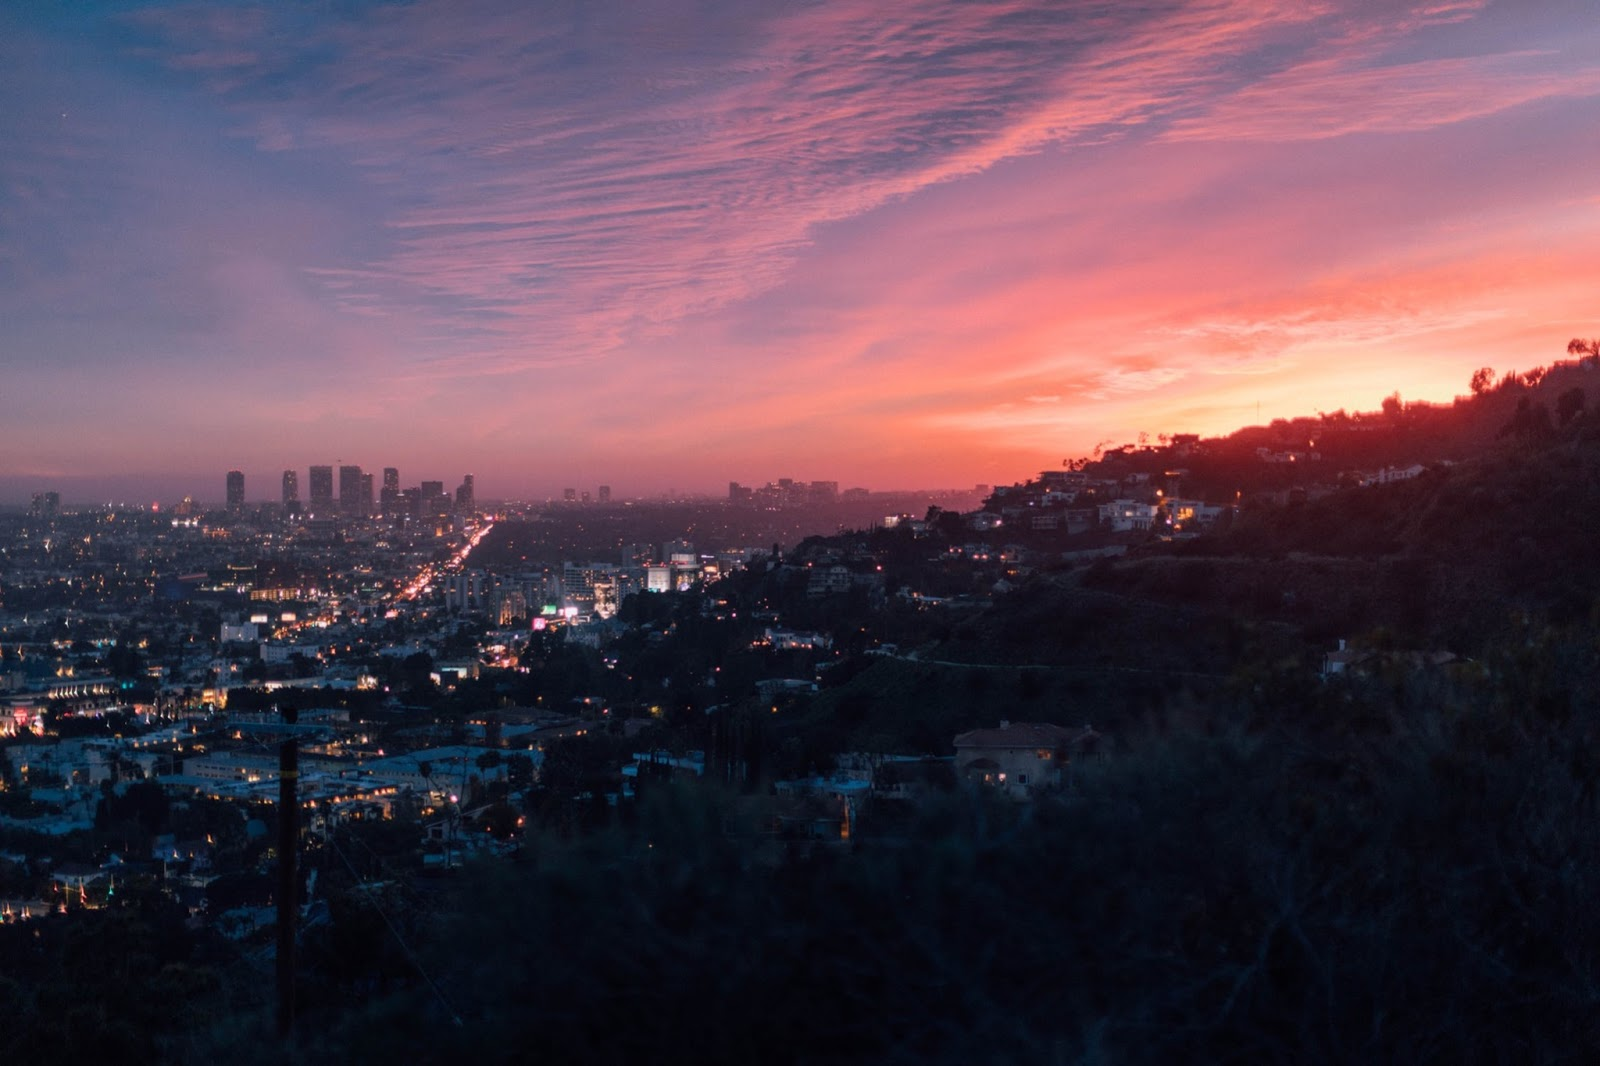 sunset view of south LA area